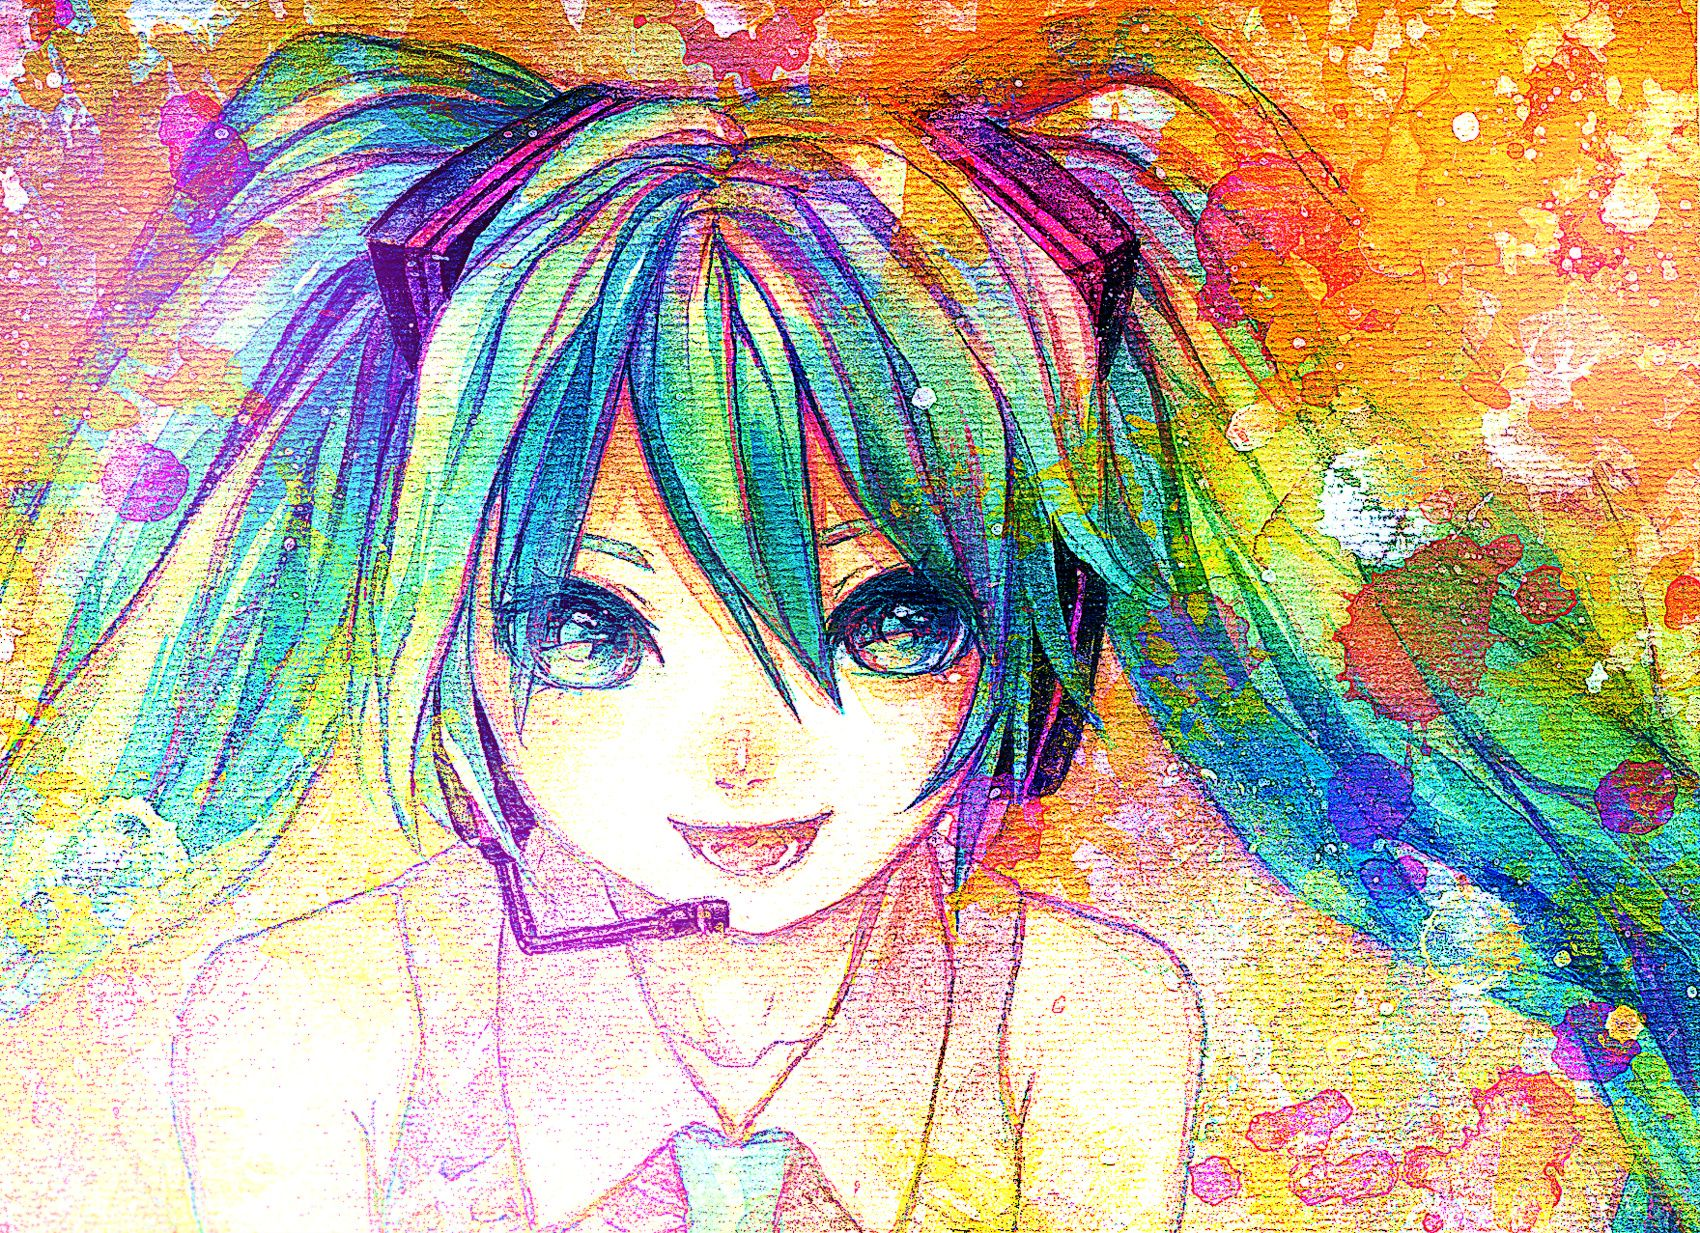 digital anime art | Hatsune Miku, anime, anime girl, aqua, aqua eyes, aqua hair, art ...